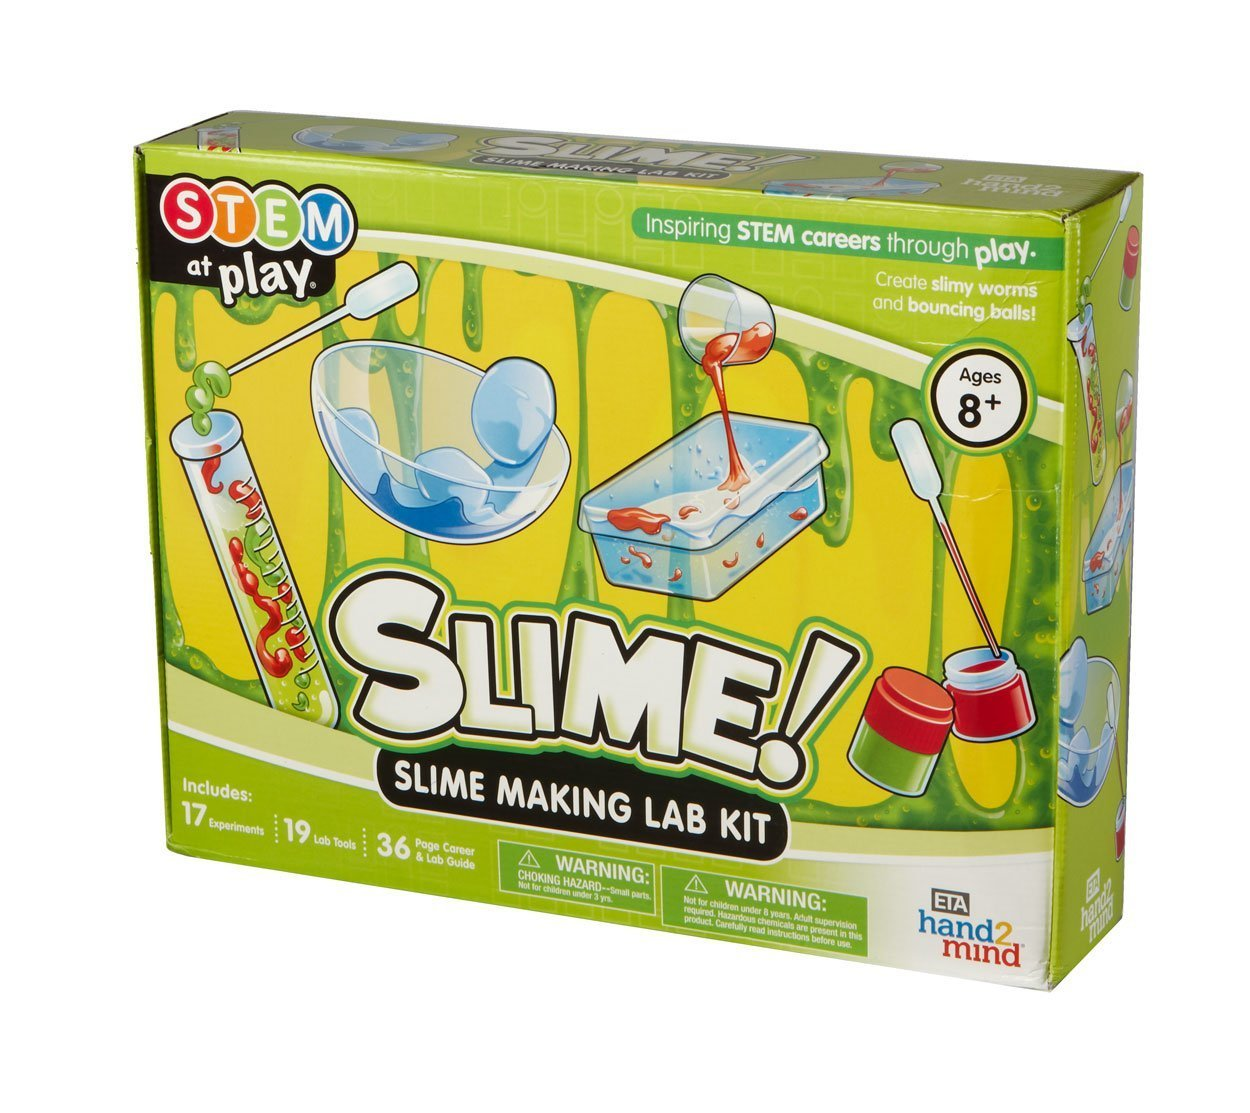 7eba74d81 Science Slime Making Lab Kit For Kids (Ages 8+) - Build 14 STEM Career  Experiments & Activities   Create DIY Slimy Worms, Bouncing Balls, & More!